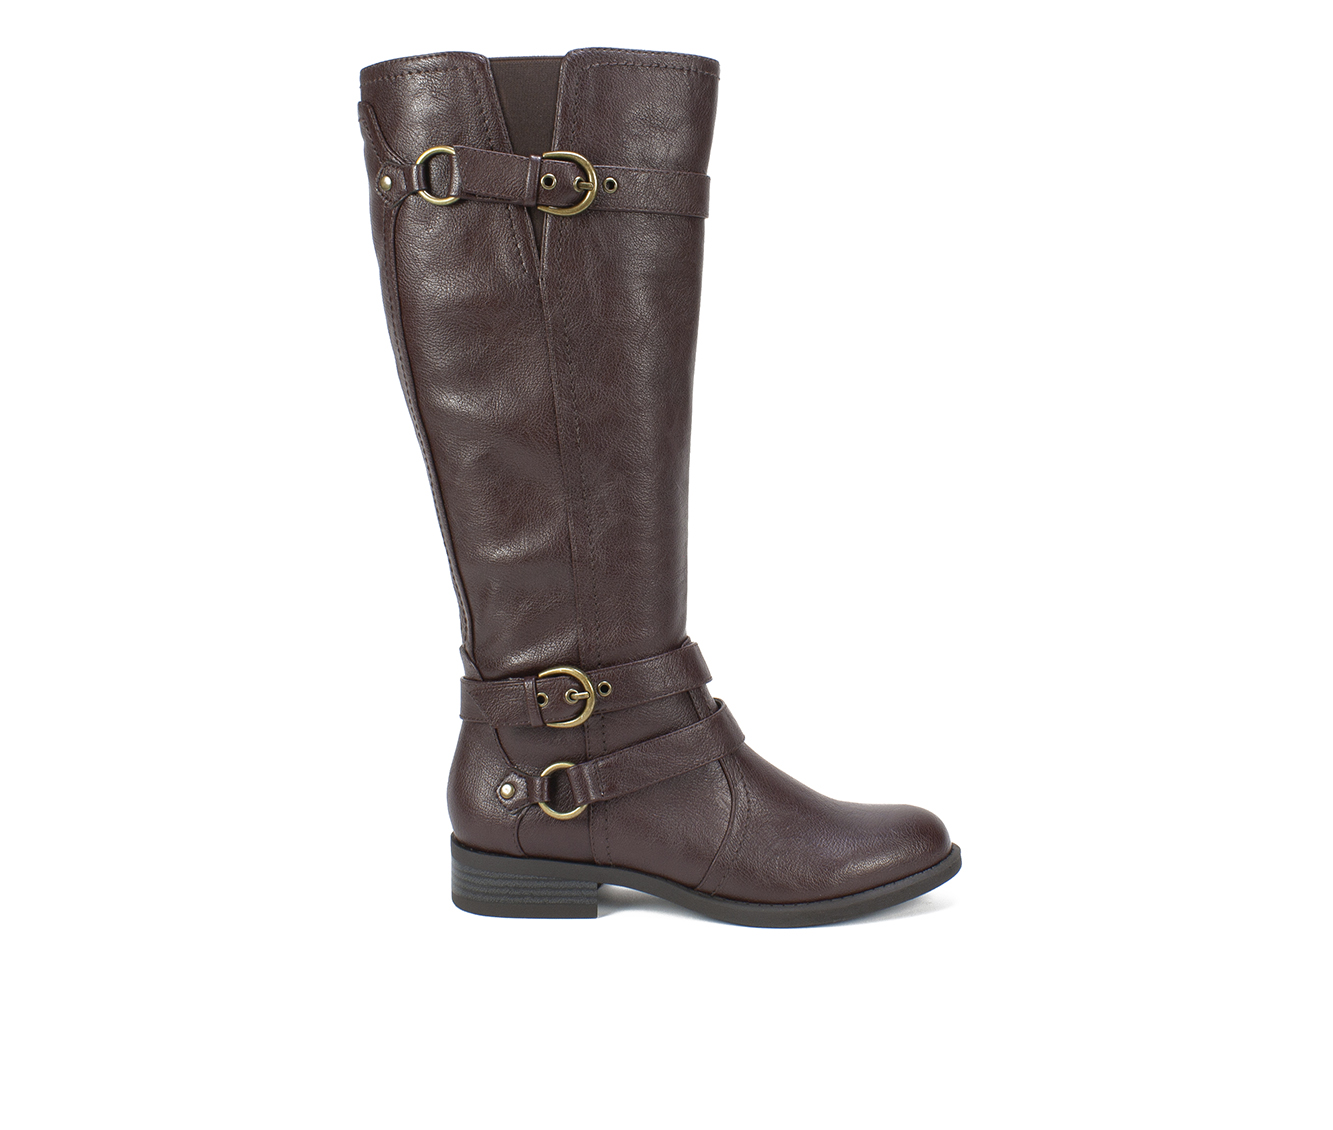 White Mountain Loyal Women's Boots (Brown - Faux Leather)